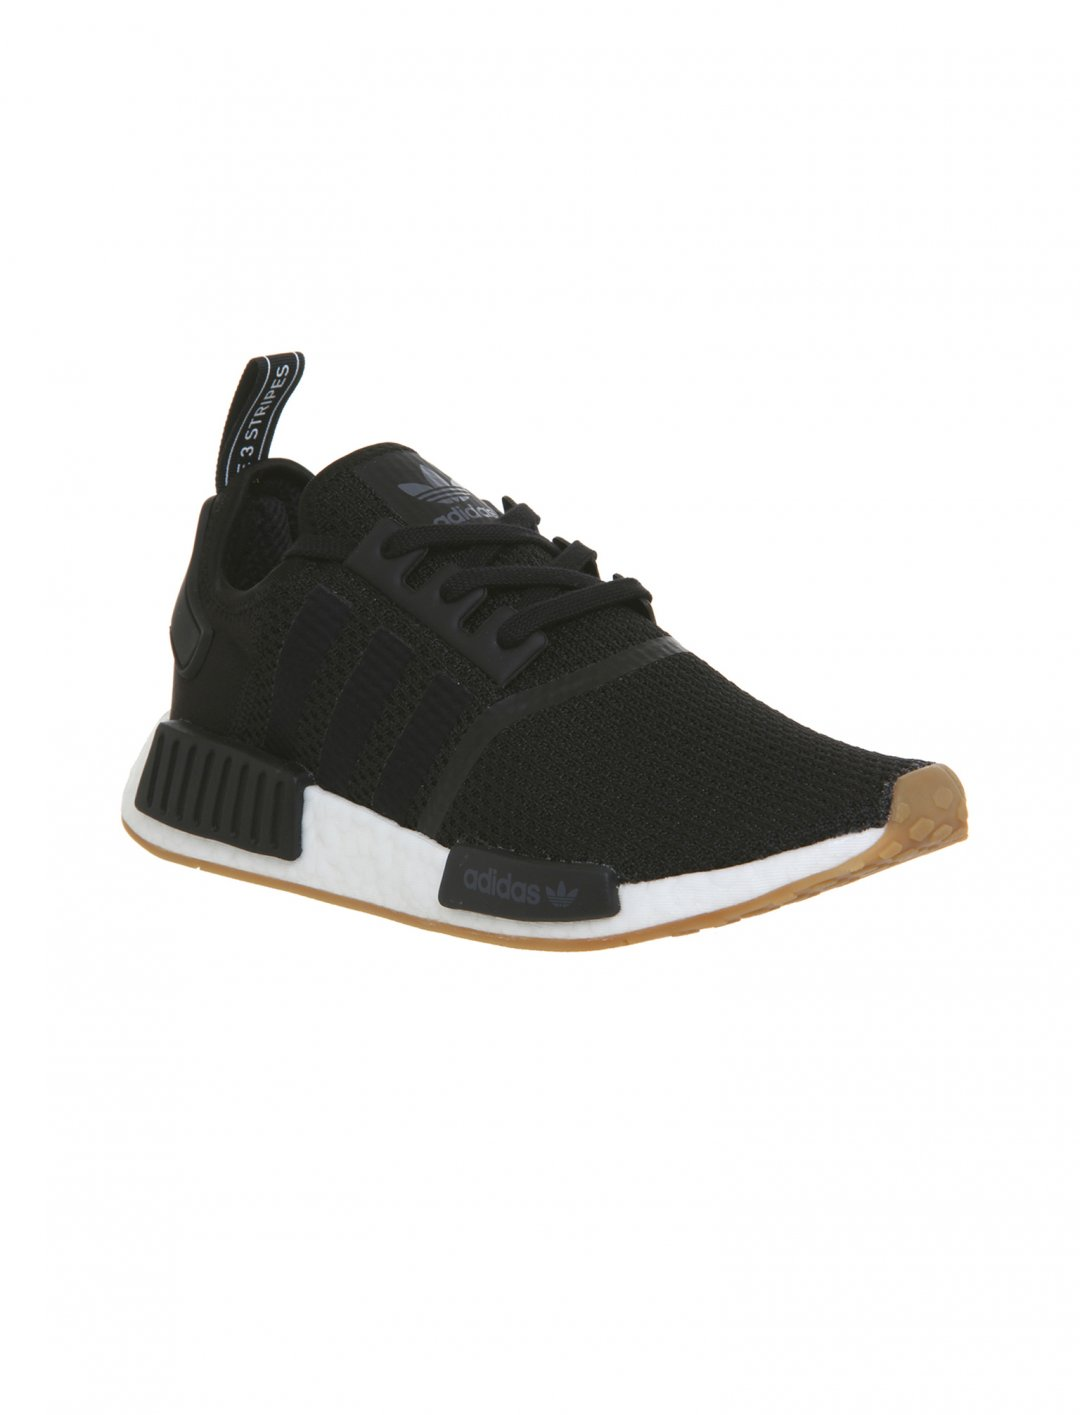 "Craig David's Black Trainers {""id"":12,""product_section_id"":1,""name"":""Shoes"",""order"":12} adidas"